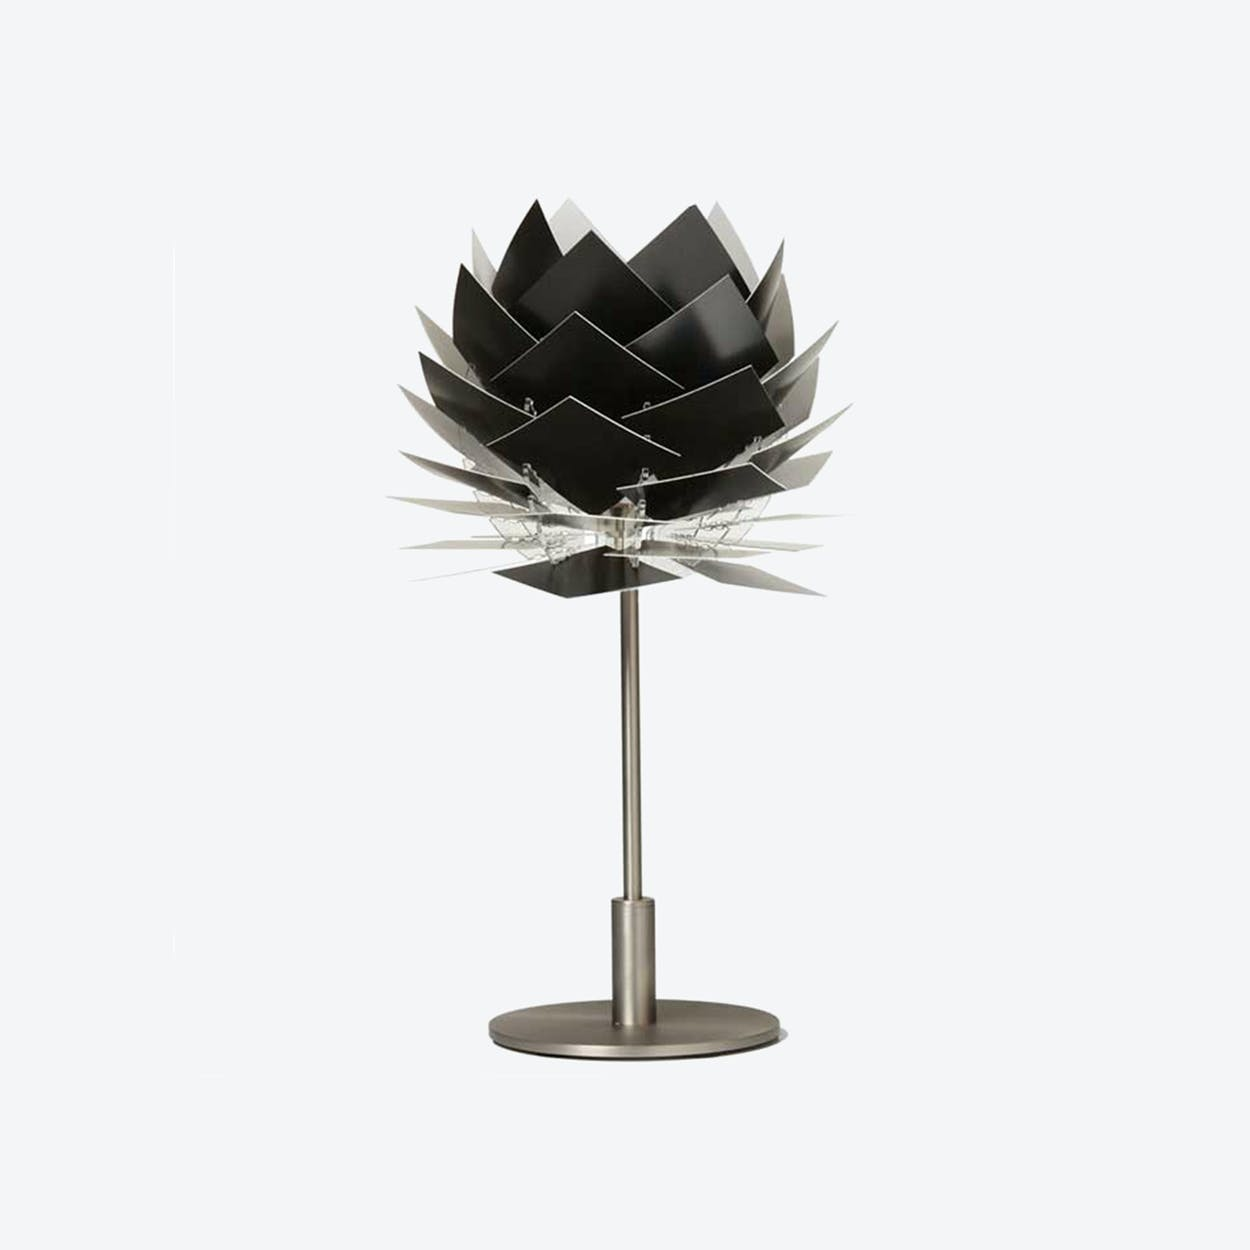 XS PineApple Table Lamp in Black